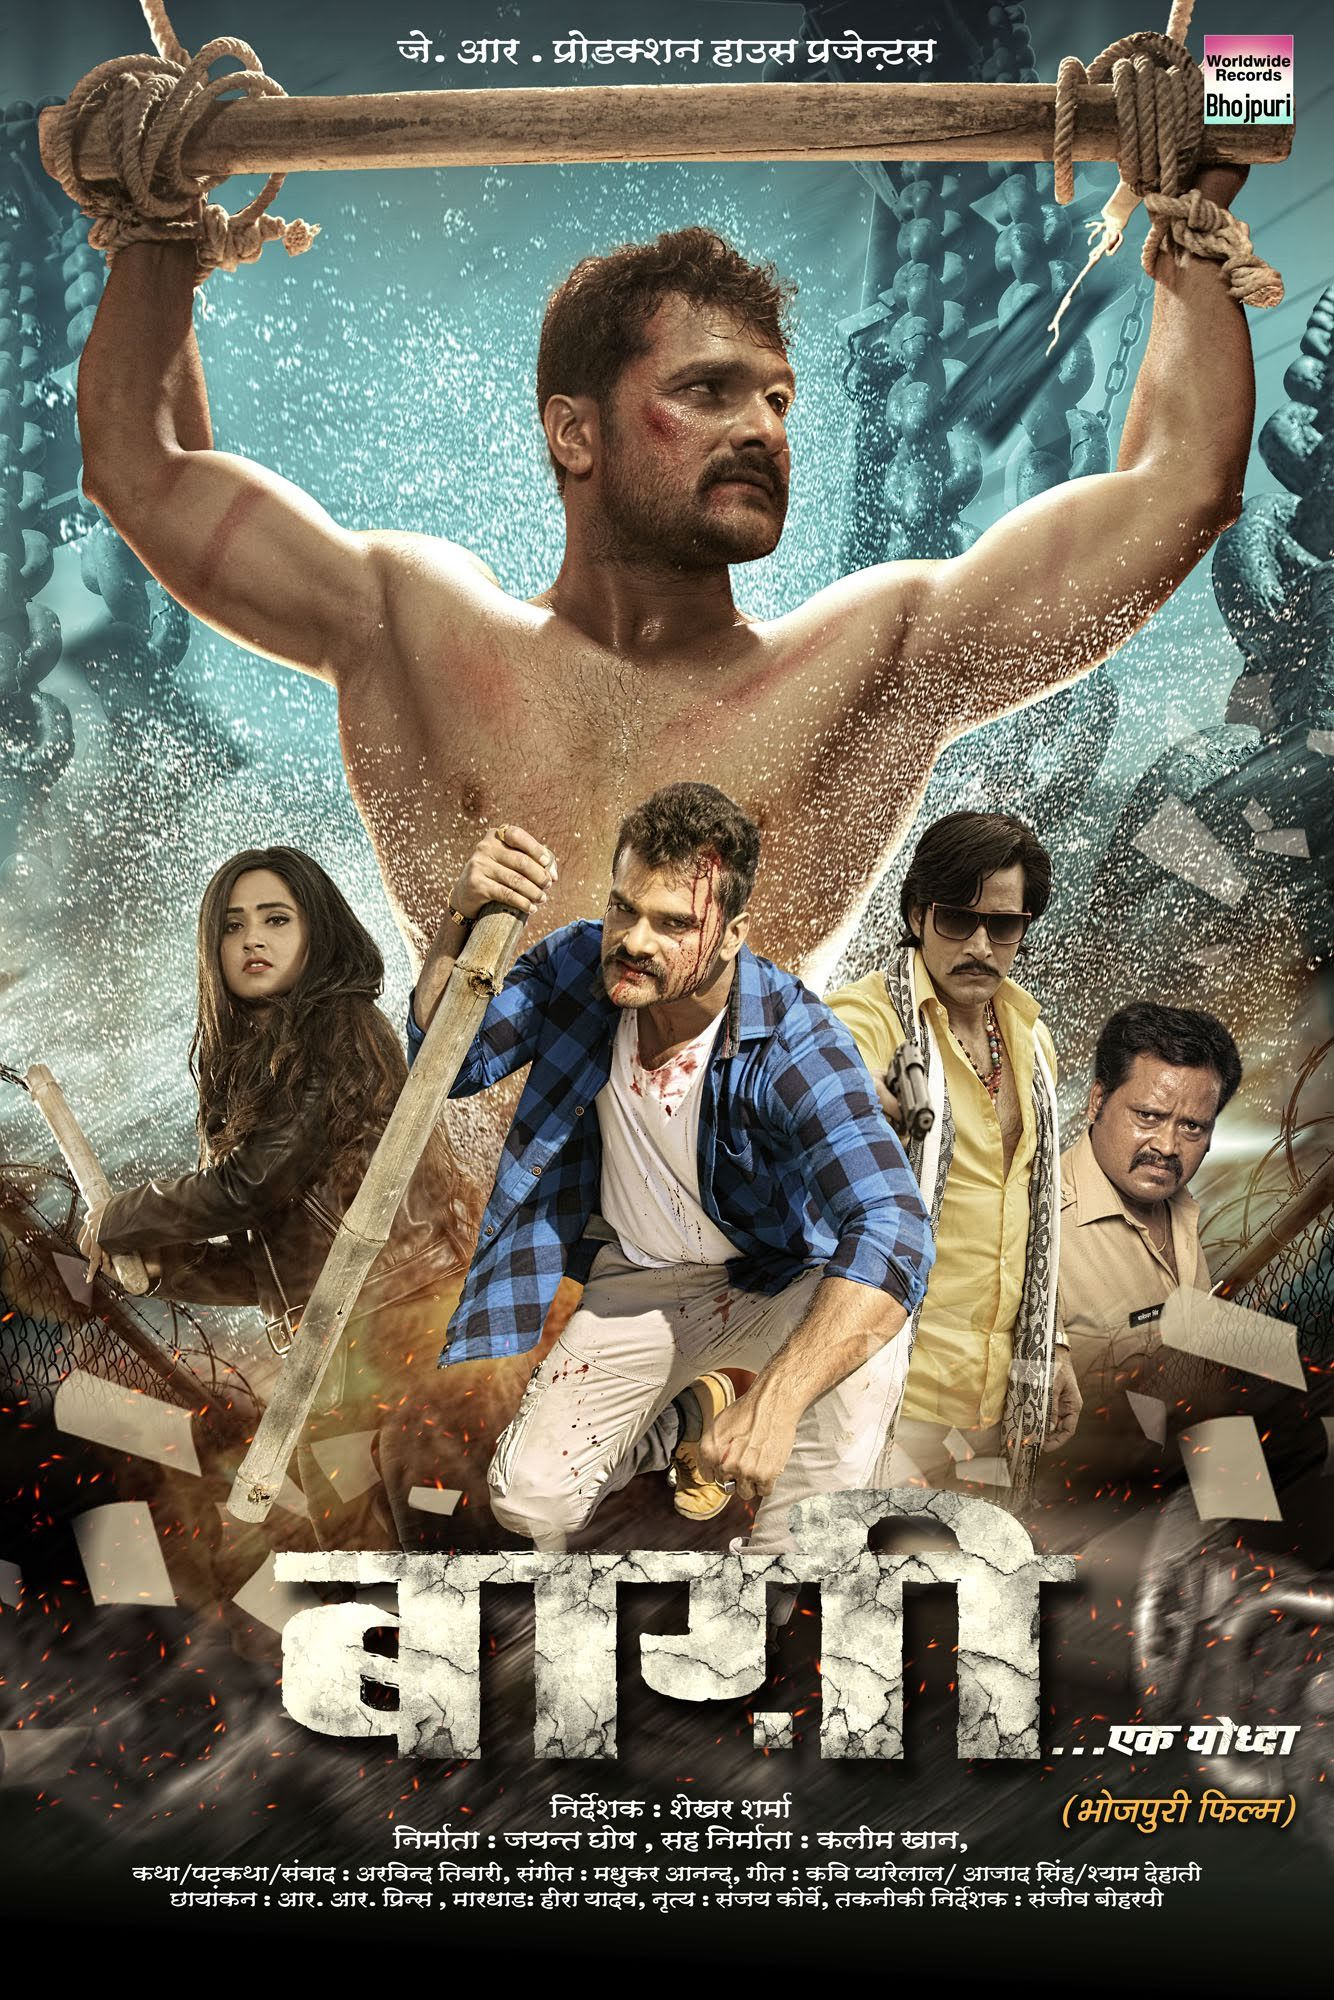 Baaghi Ek Yodha (2019) Bhojpuri 720p HDRip 1.5GB Download